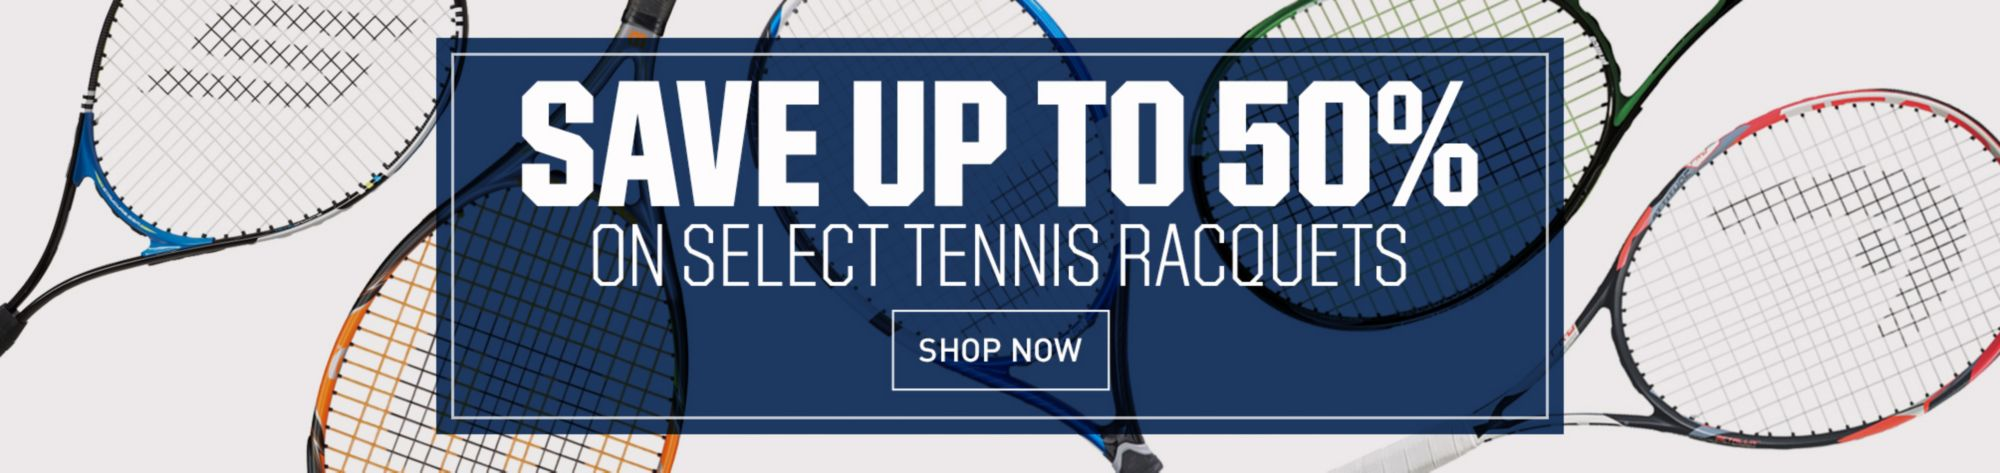 Shop Tennis Racquets